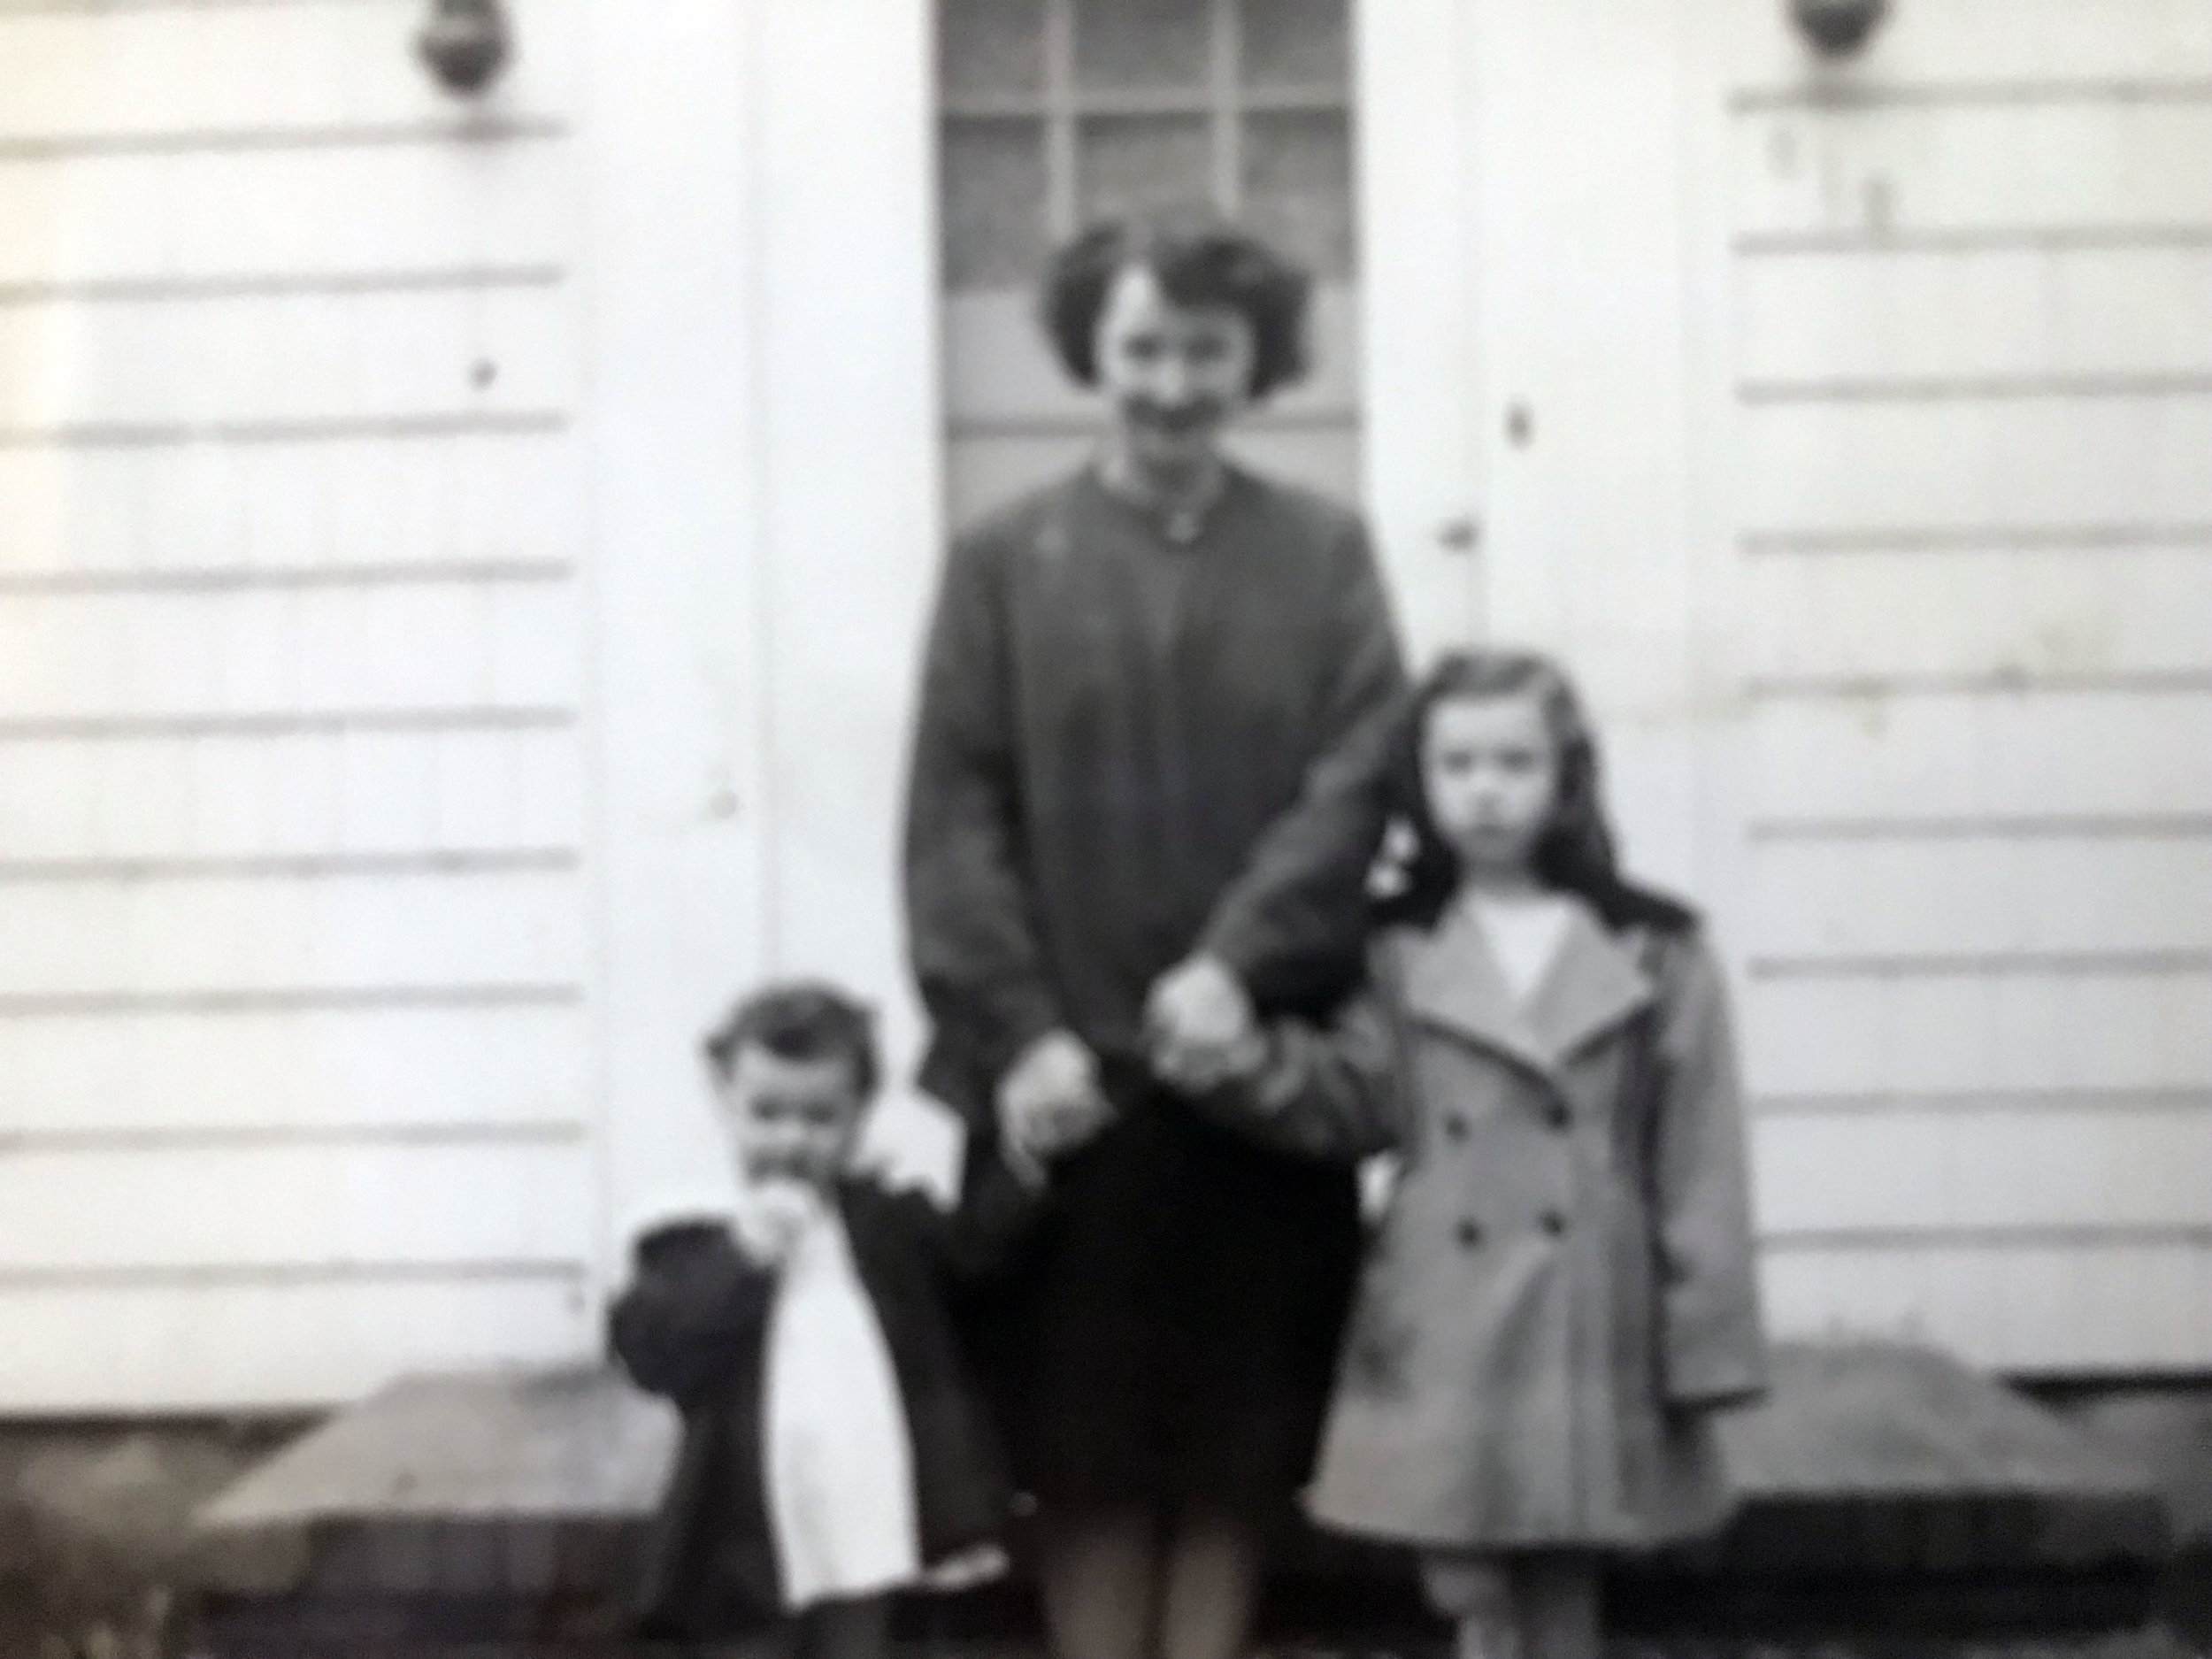 Harriet Englert with children Ann and Darlene stand in front of first family residence (image copyright, W.L. and D.K. Talbott Trust)